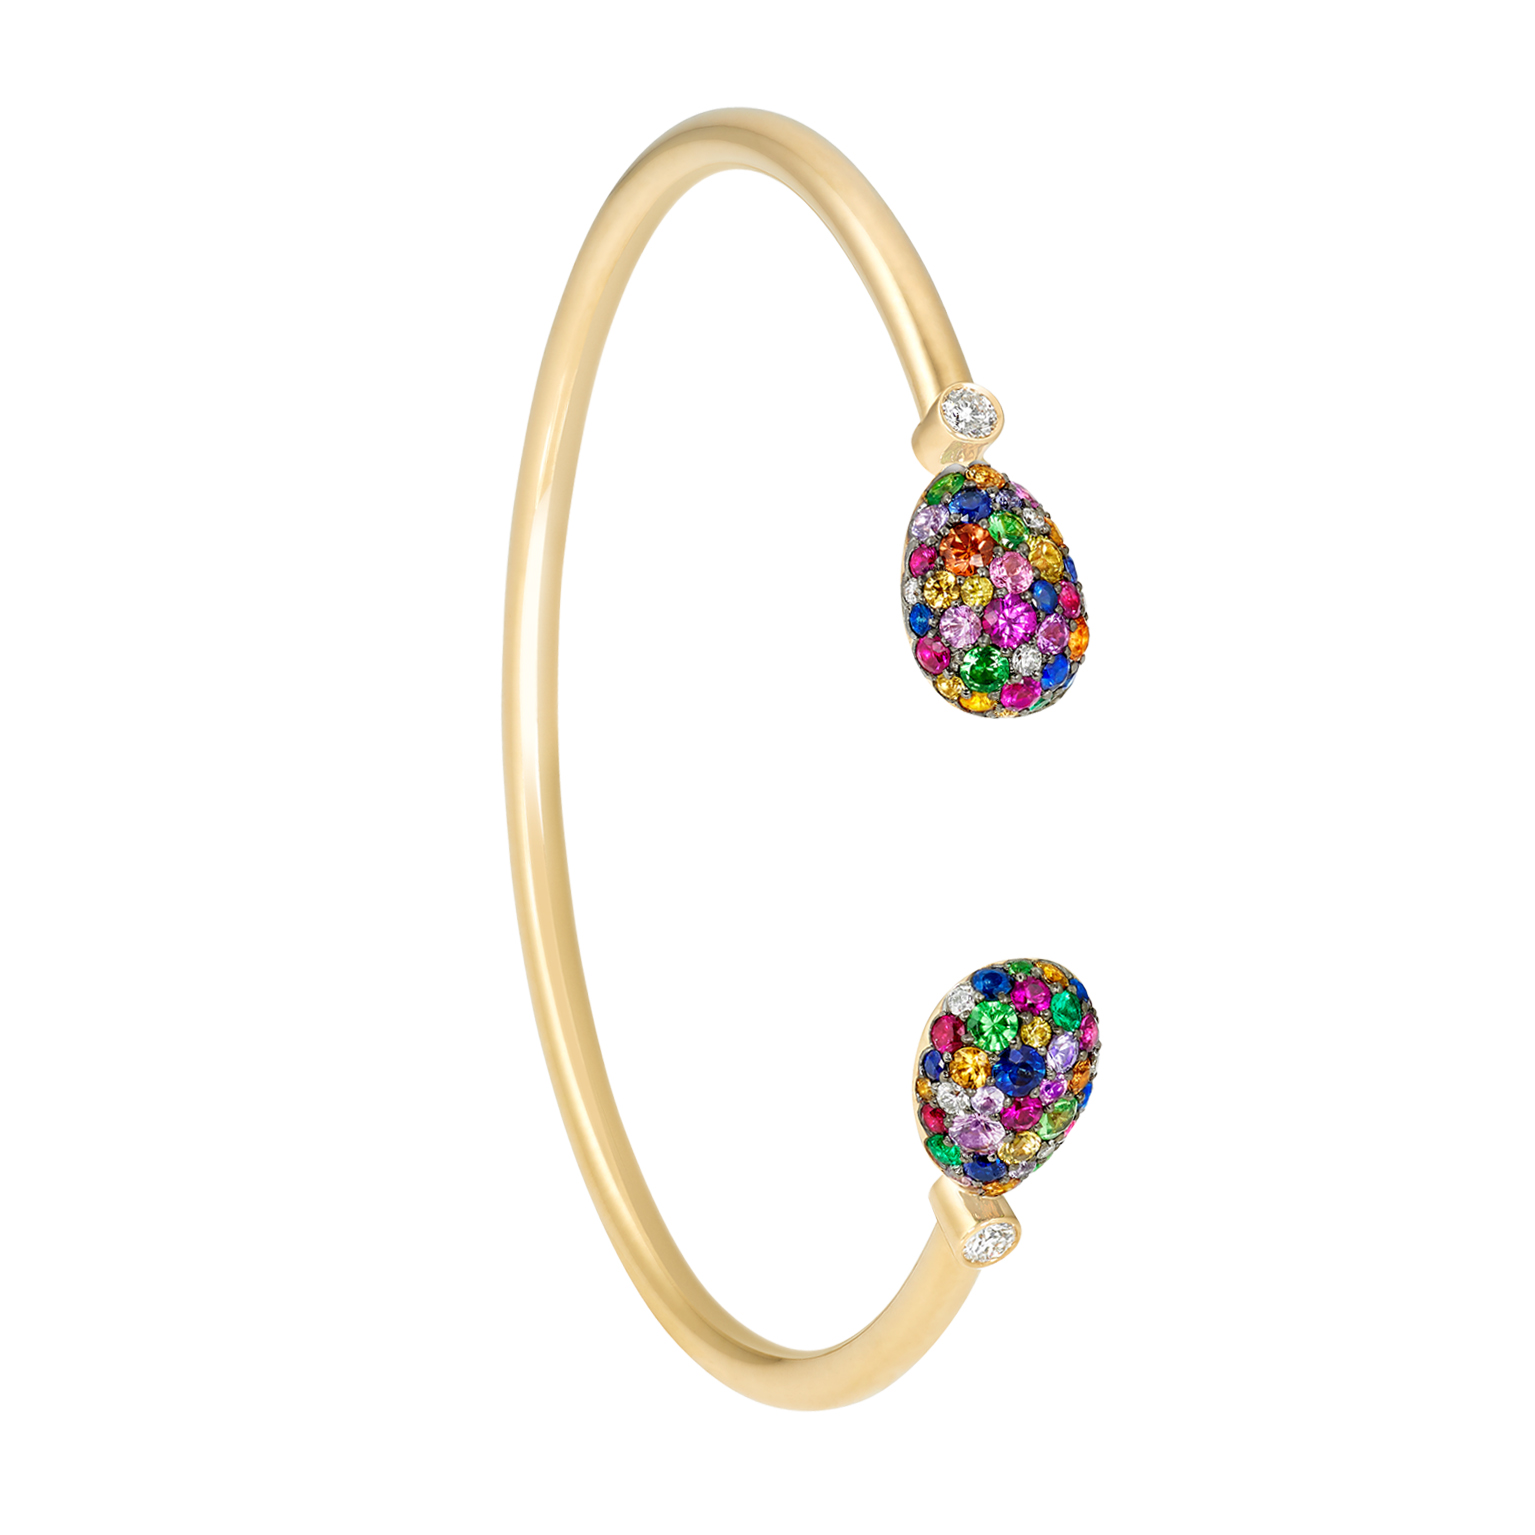 COLLECTION EMOTIION MULTICOLORE JONC OUVERT OEUF FABERGÉ TAILLE SMALL